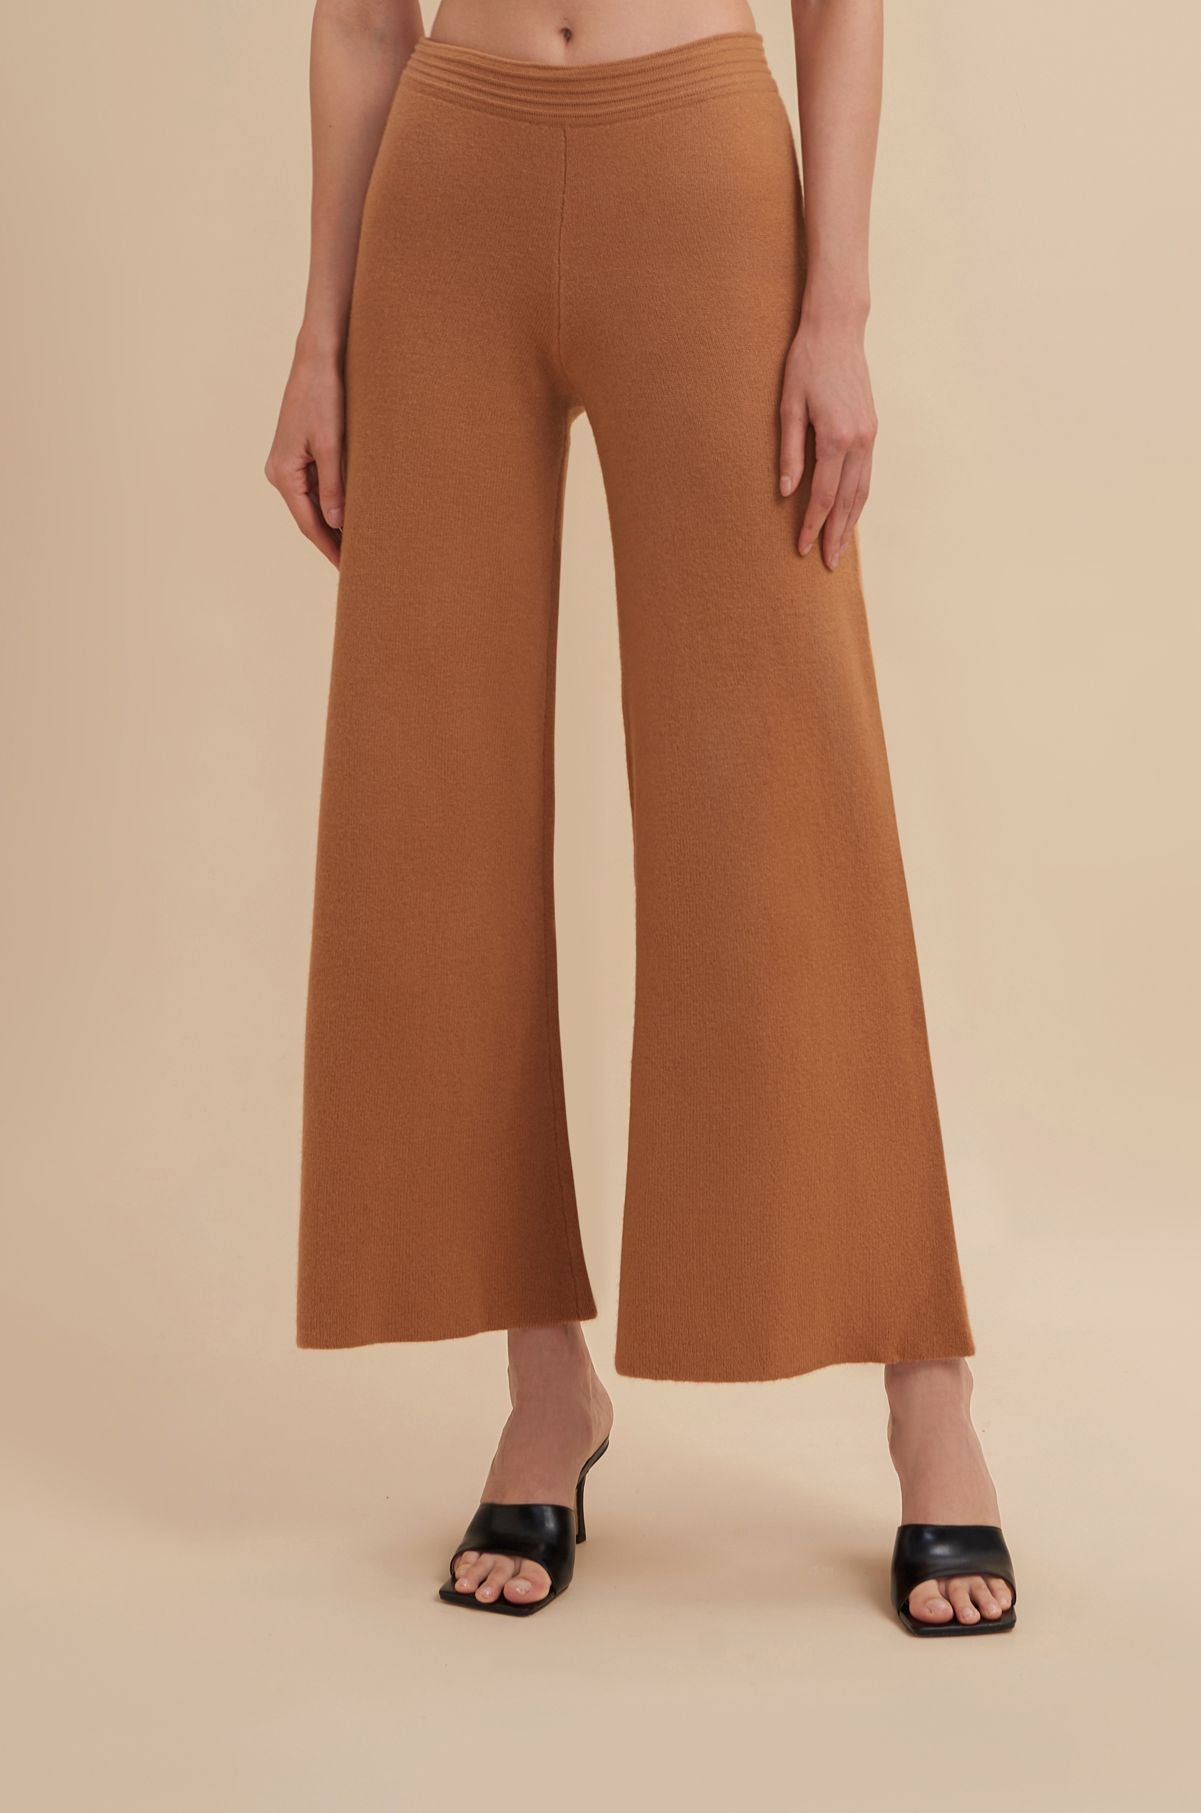 wide leg pants, wide leg sweatpants, knit wide leg pants, matching pants set, matching pants and bra, cashmere sweatpants, knit pants, lounge pants, lounging pants, sweatpants